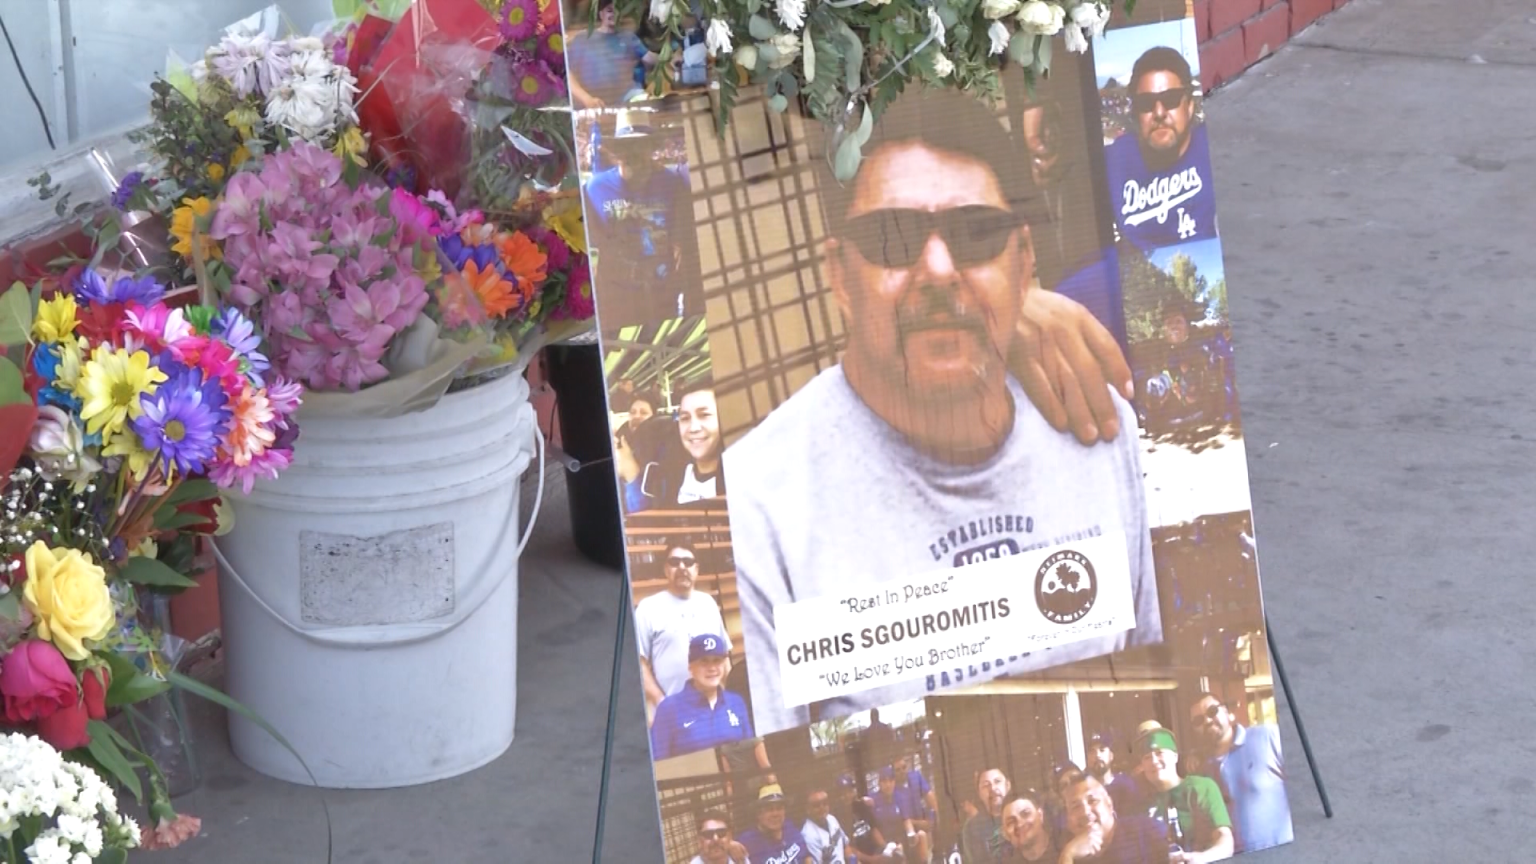 Judge Denies Bail for Man Accused of Killing Cathedral City Business Owner